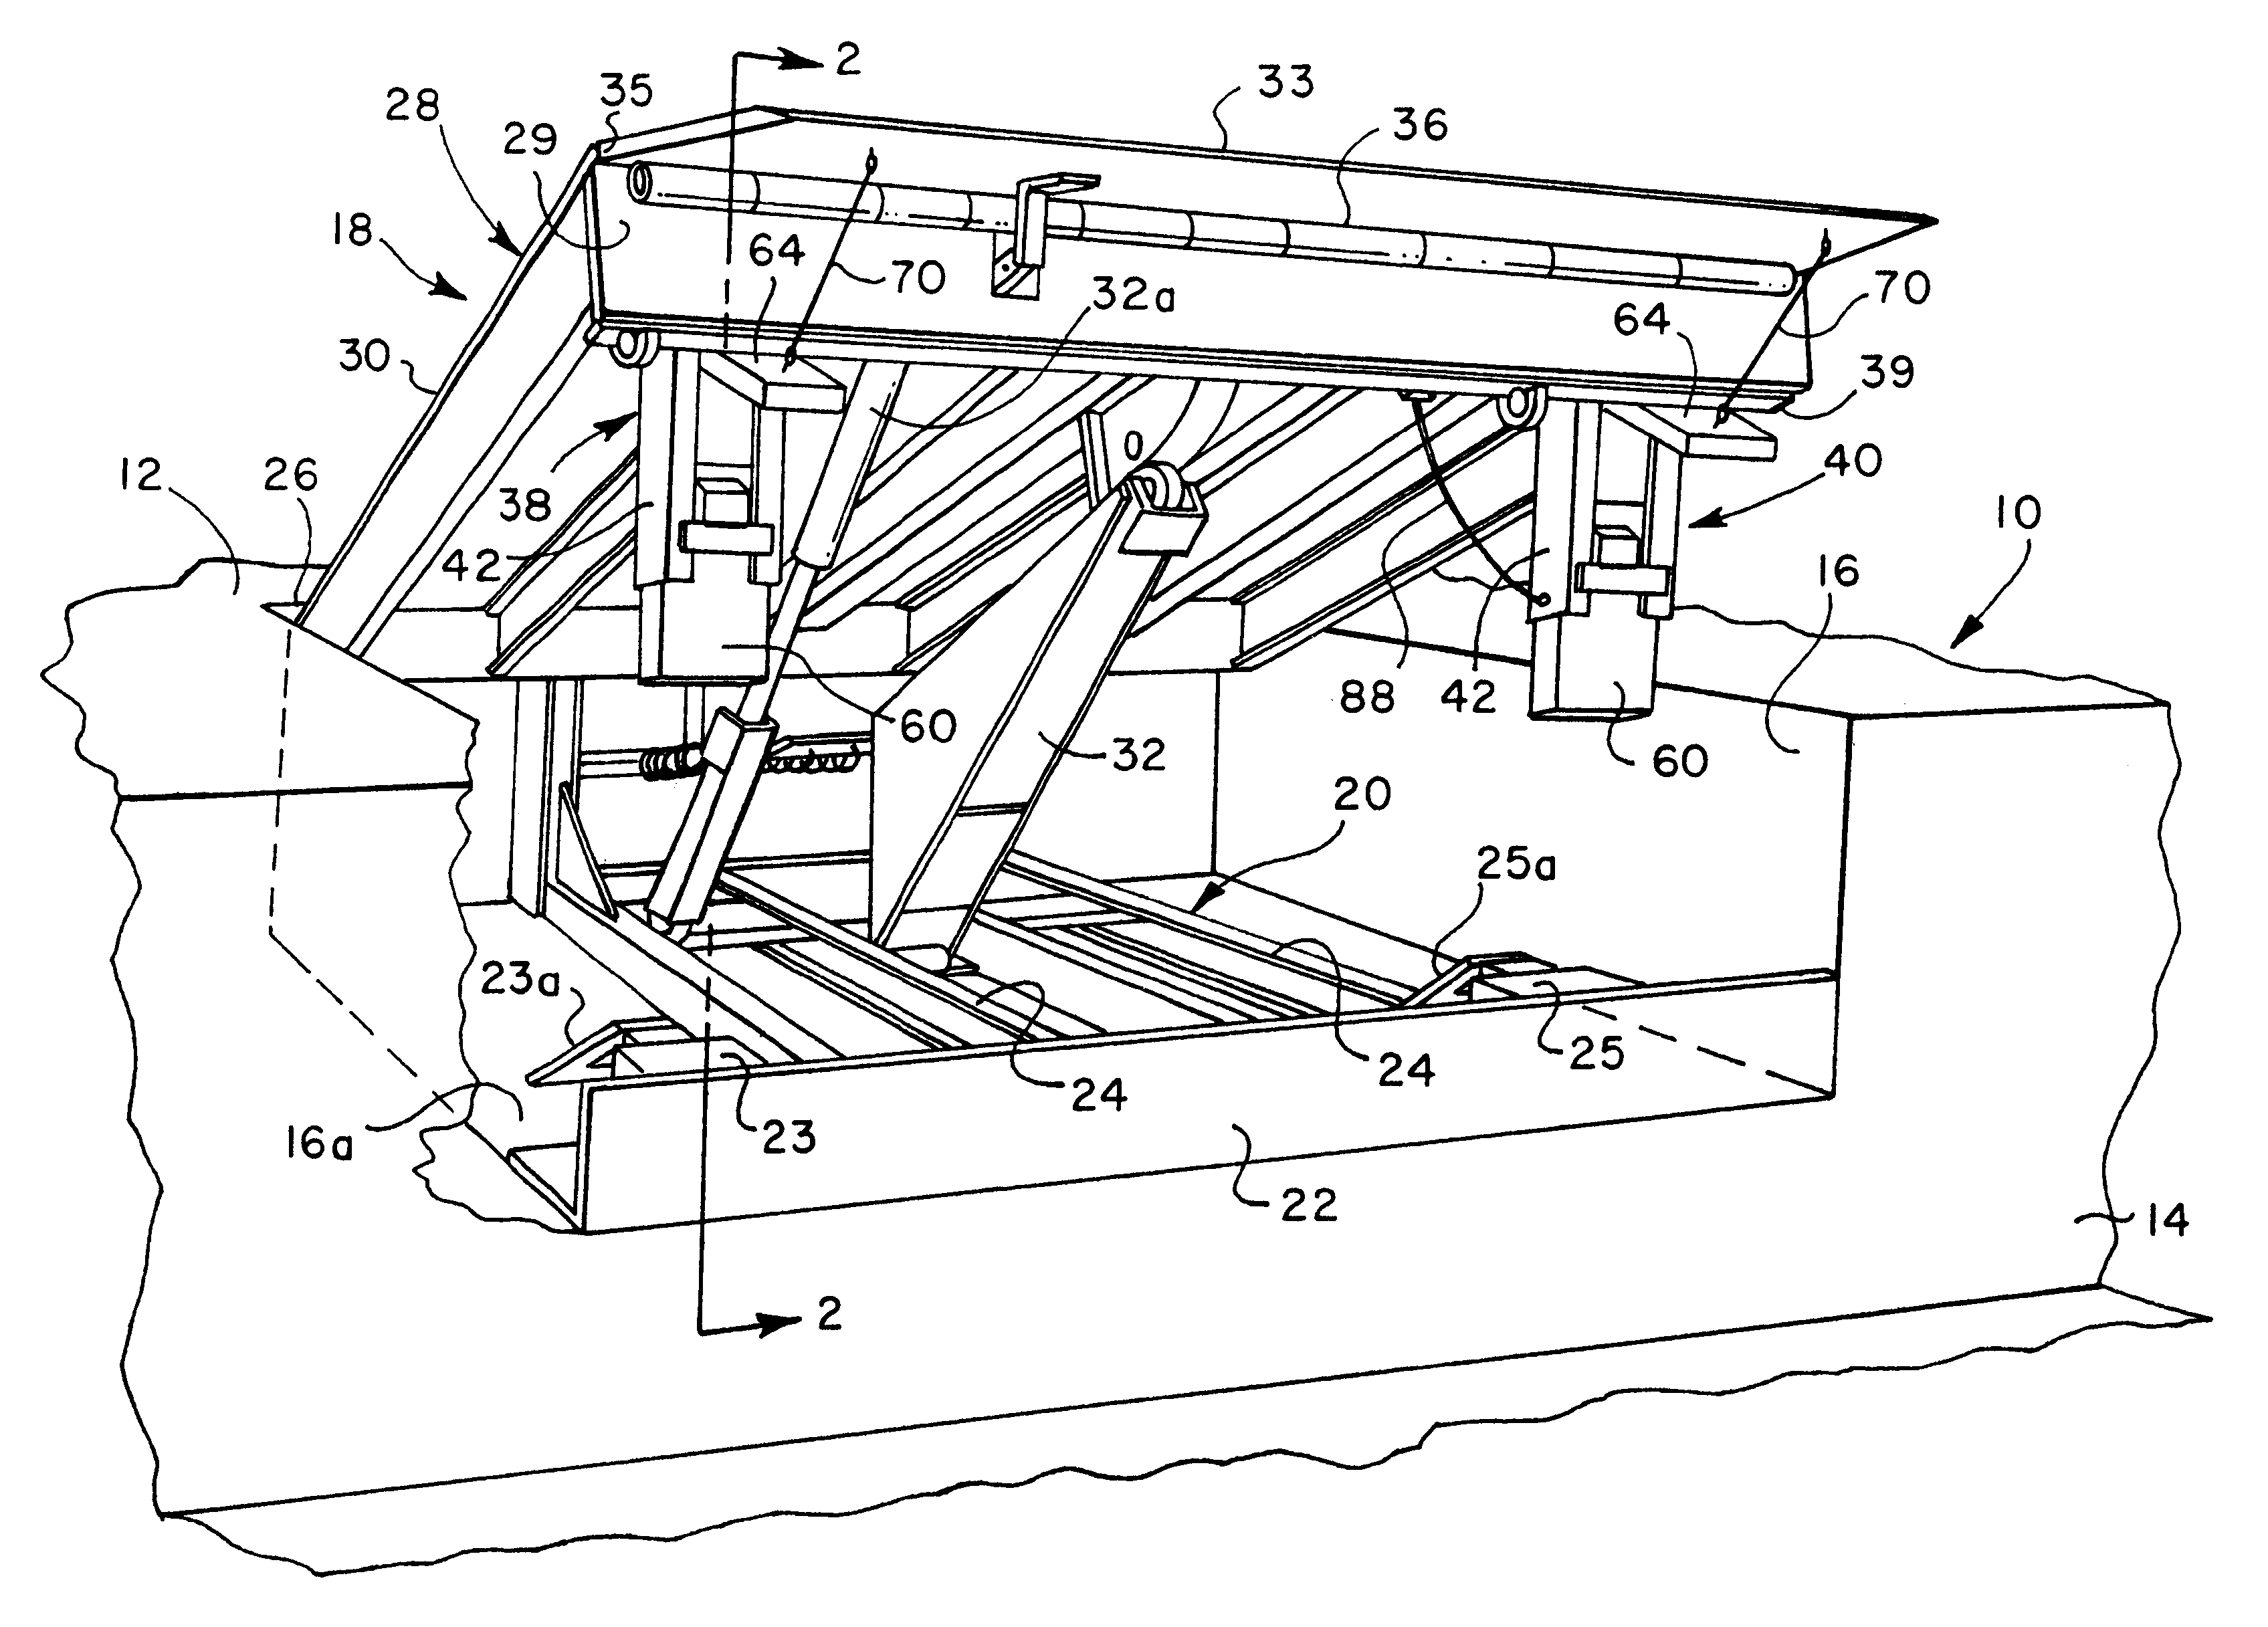 kelley dock leveler wiring diagram